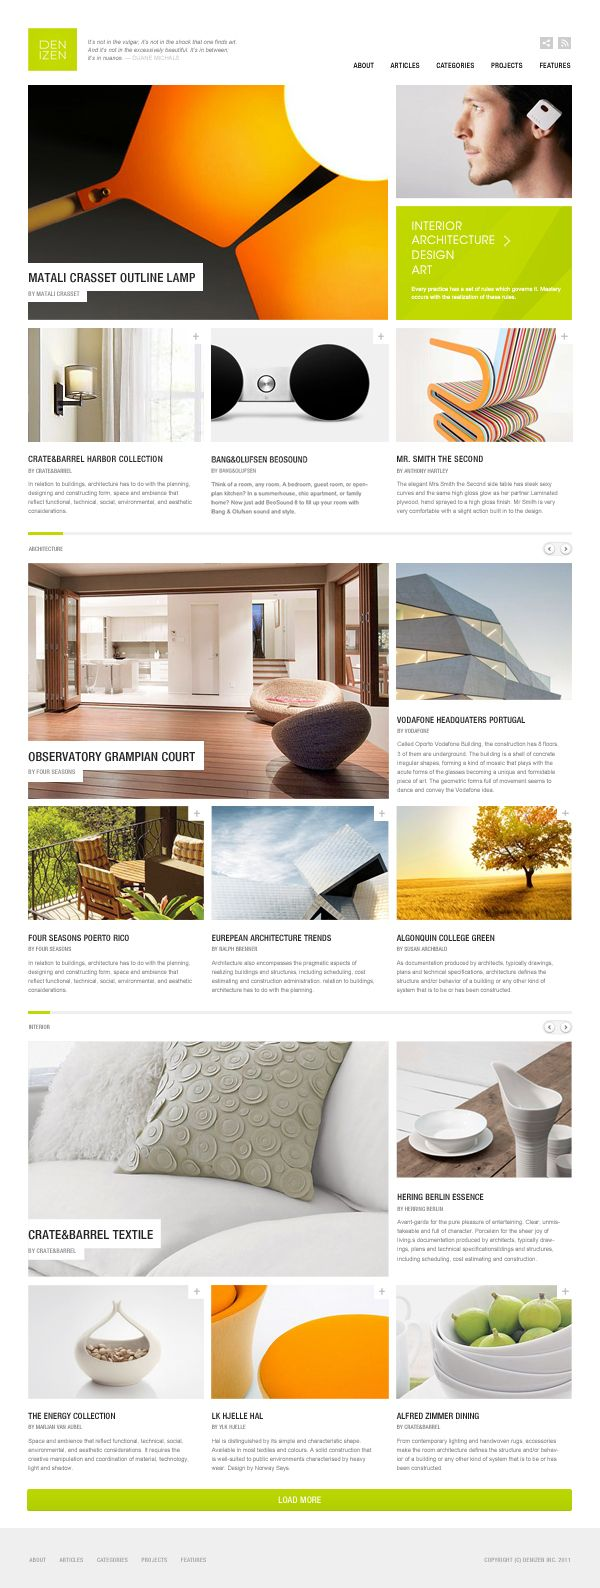 Web design dubai  Renascent New Media is a dubai based web design company specializing in architectural and interior design, website design and logo designing services.  http://www.rena-scent.com/web-design-dubai-services/